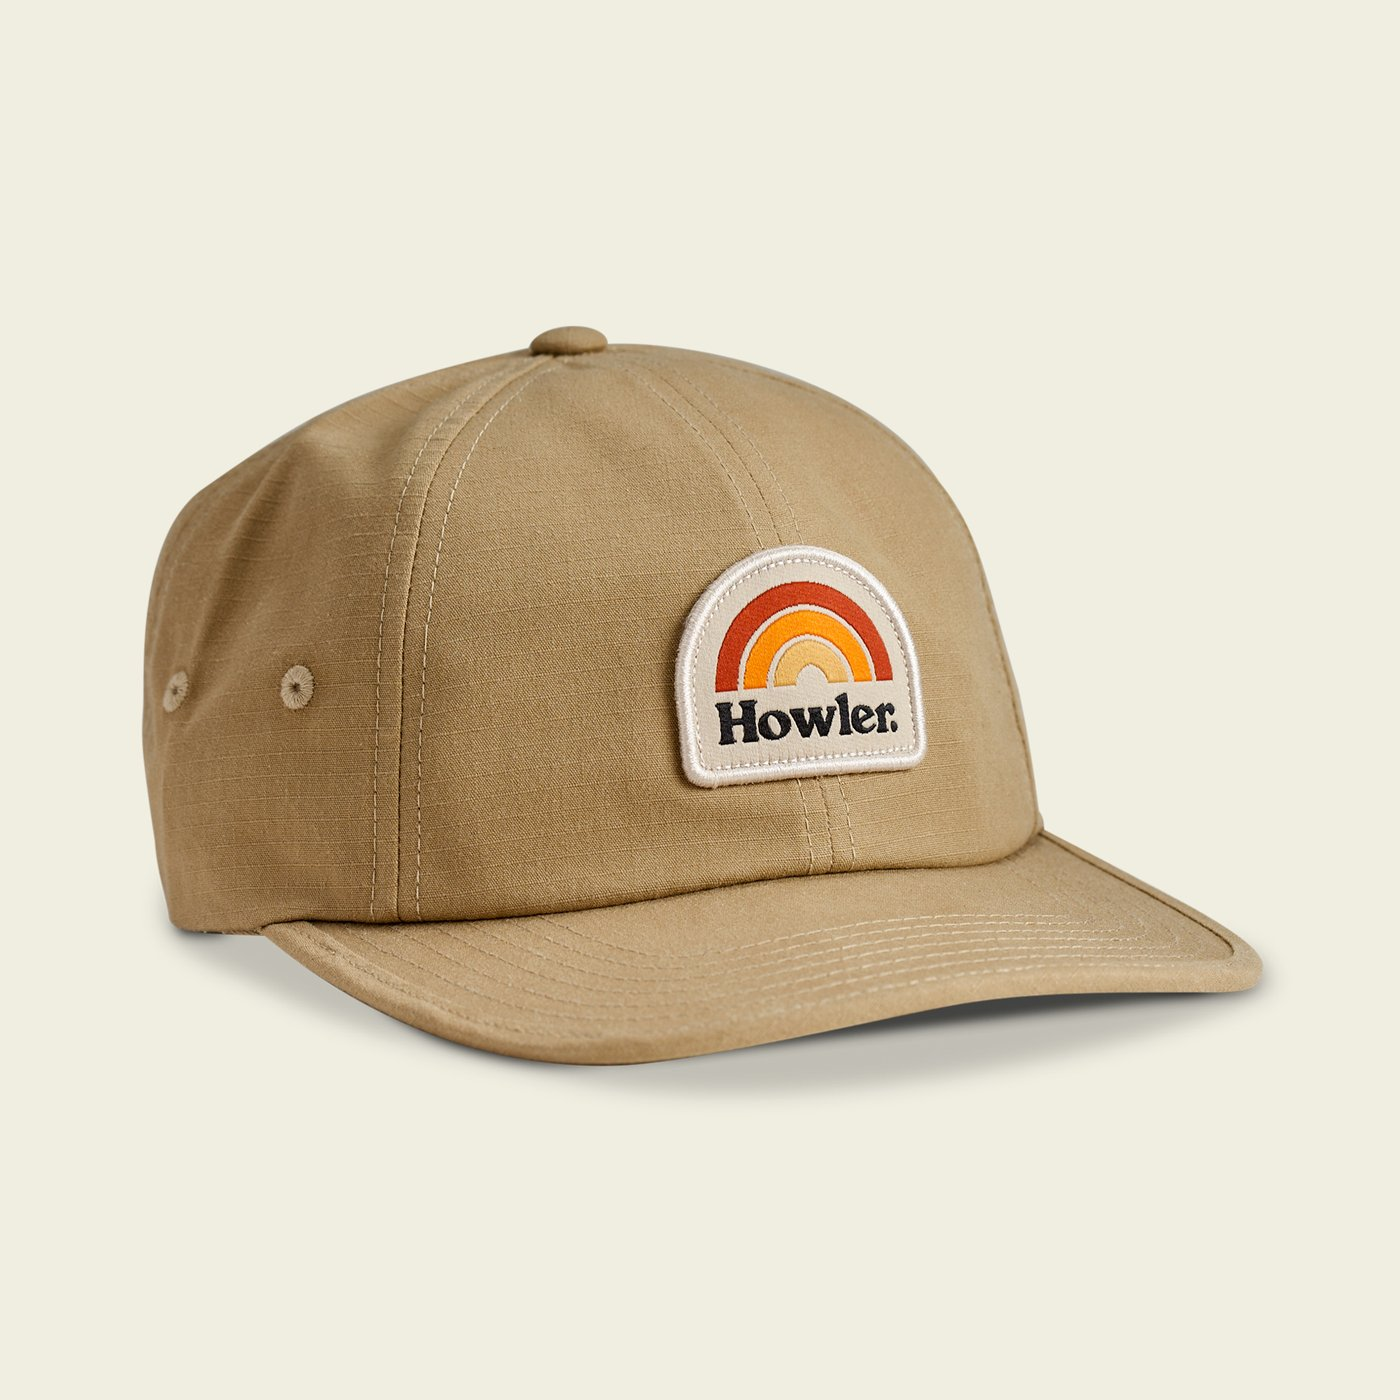 Howler Brothers Howler Rainbow Strapback Hat